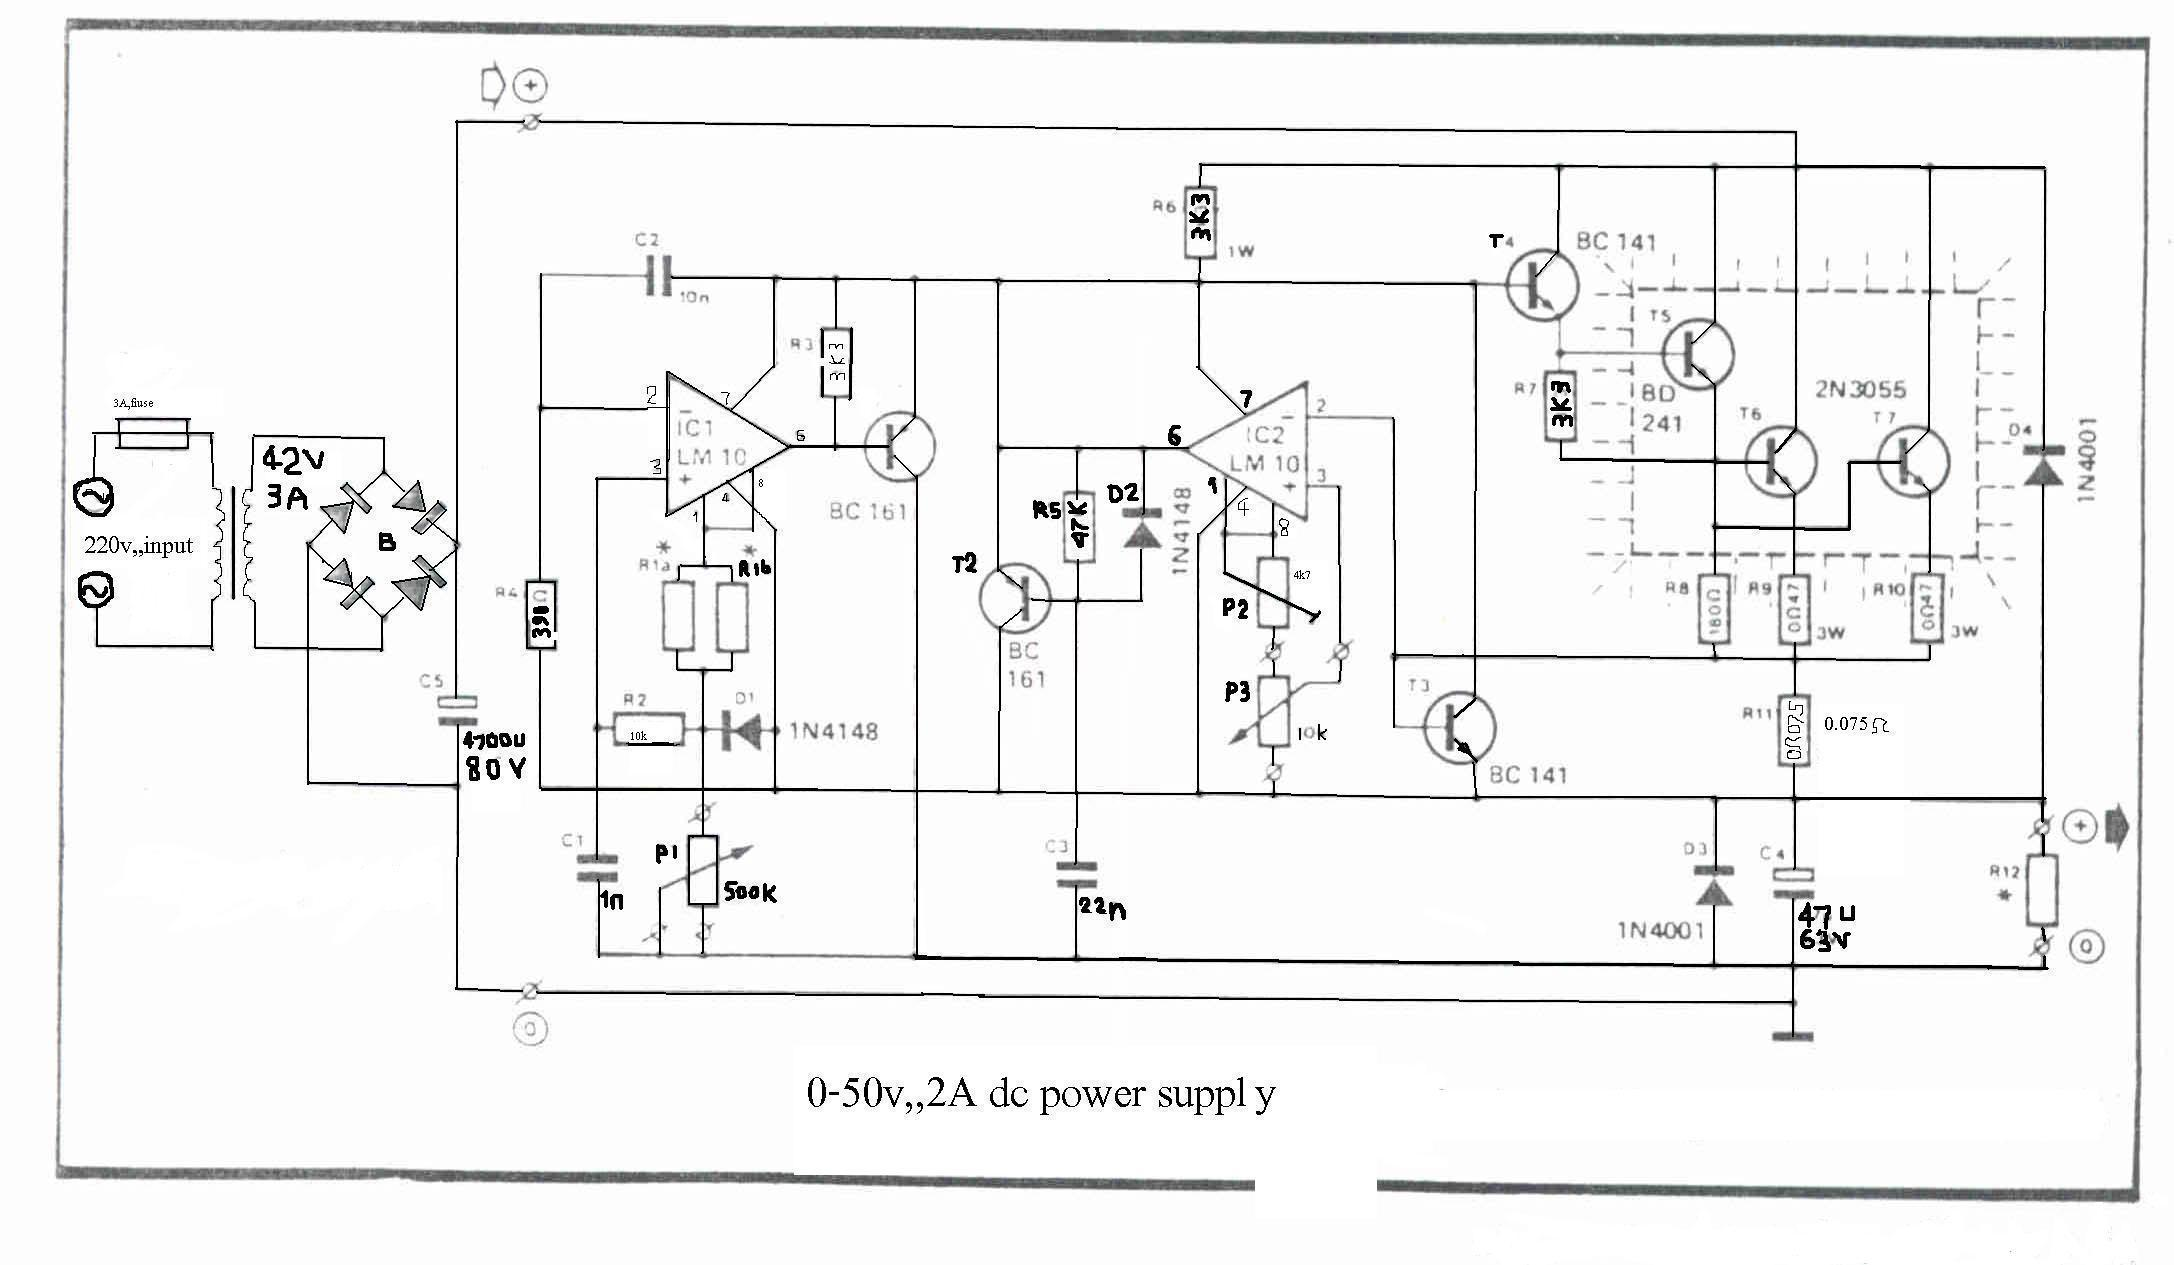 Results Page 170 About Led Bulb Circuit Searching Circuits At Figure 1 Block Diagram For The Theremin 0 50v 2a Bench Power Supply